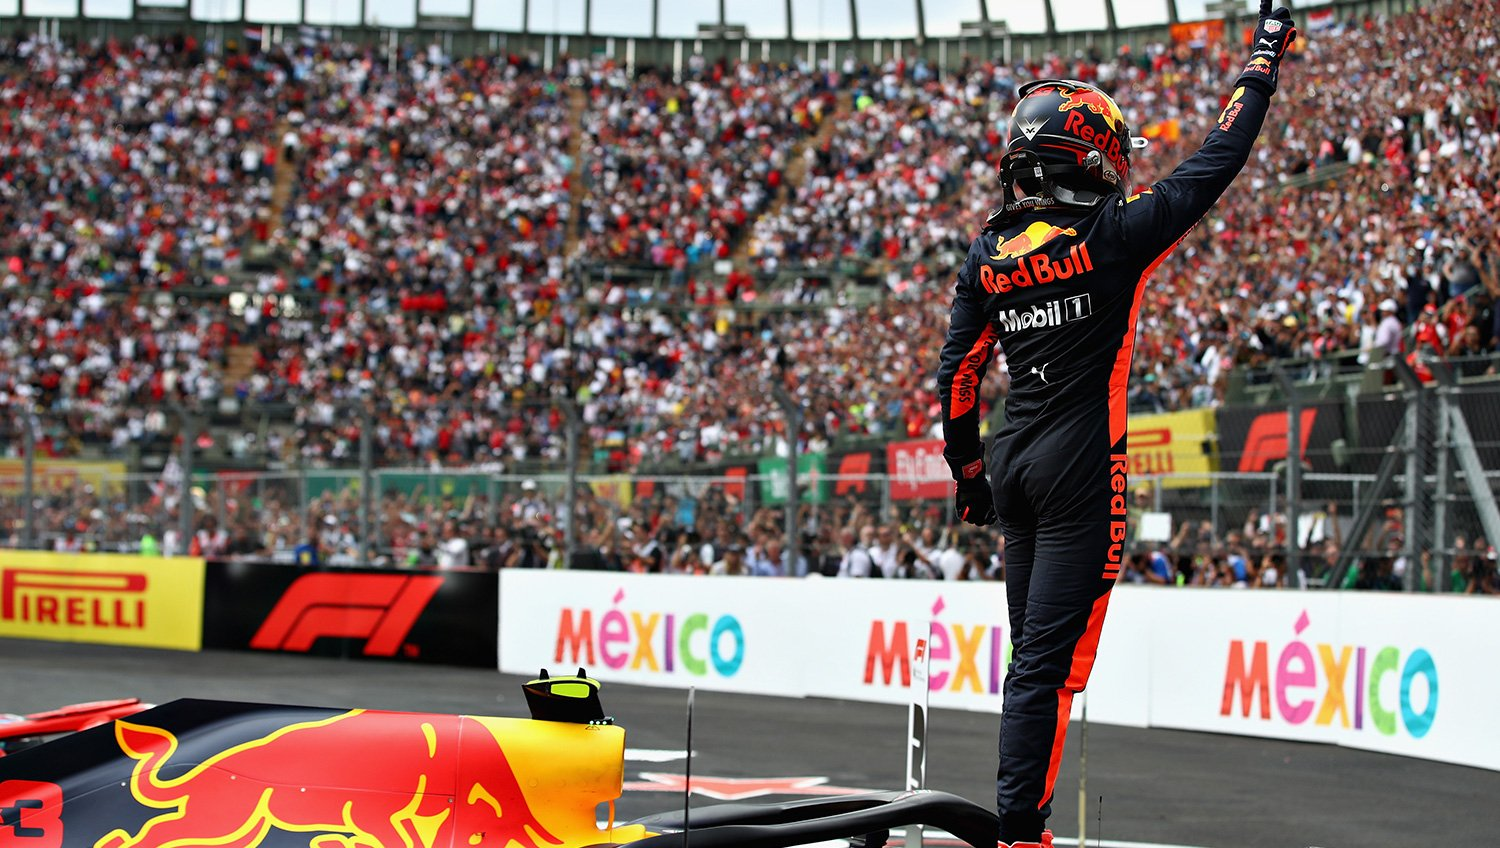 Max Verstappen celebrates with the crowd after winning the Mexican Grand Prix!